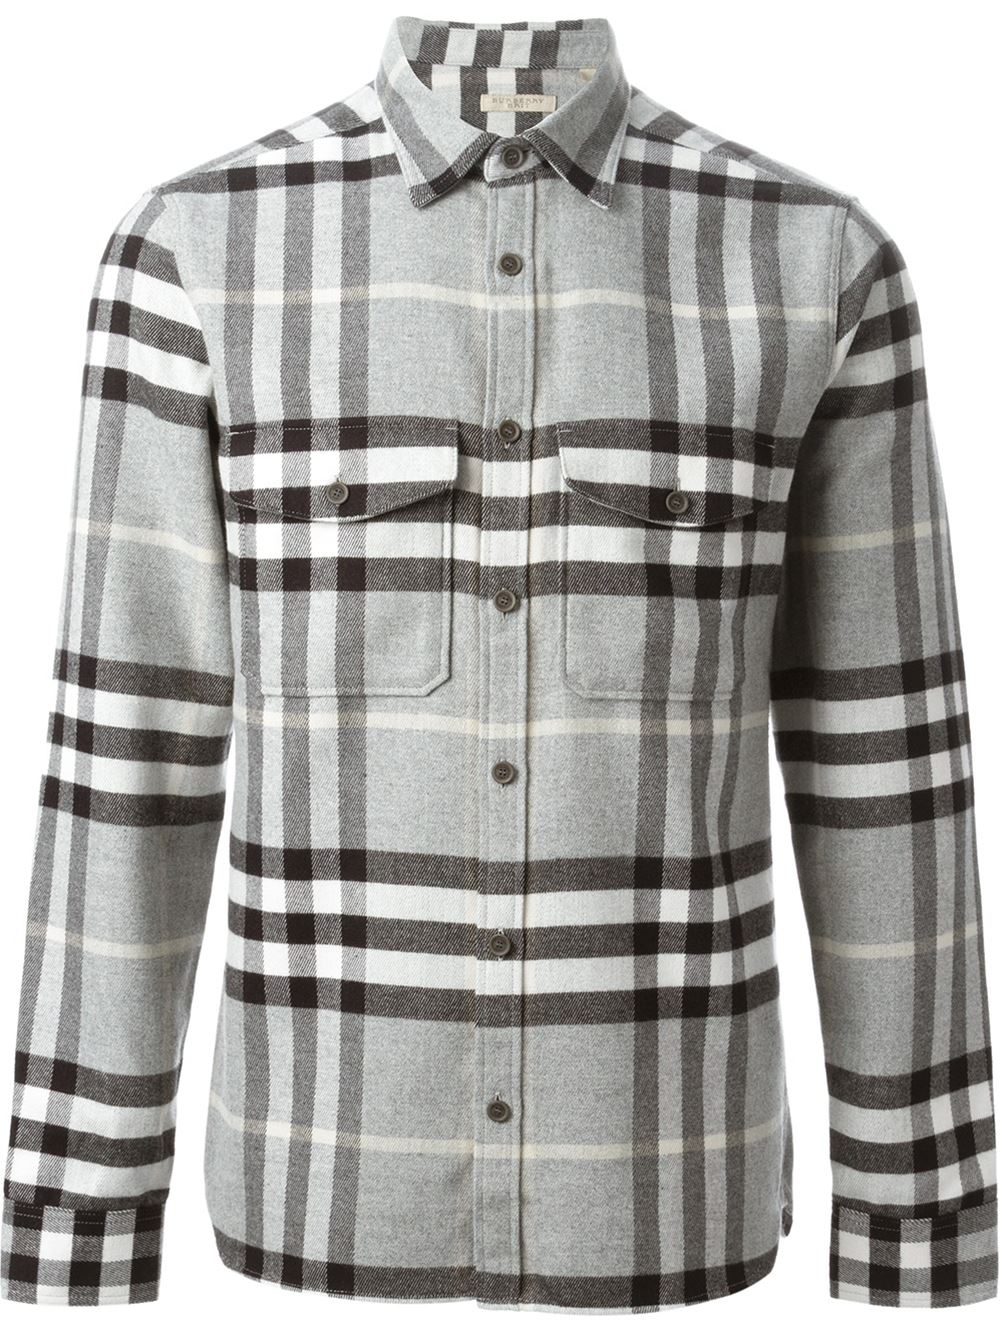 Lyst Burberry Brit Checked Flannel Shirt In Gray For Men